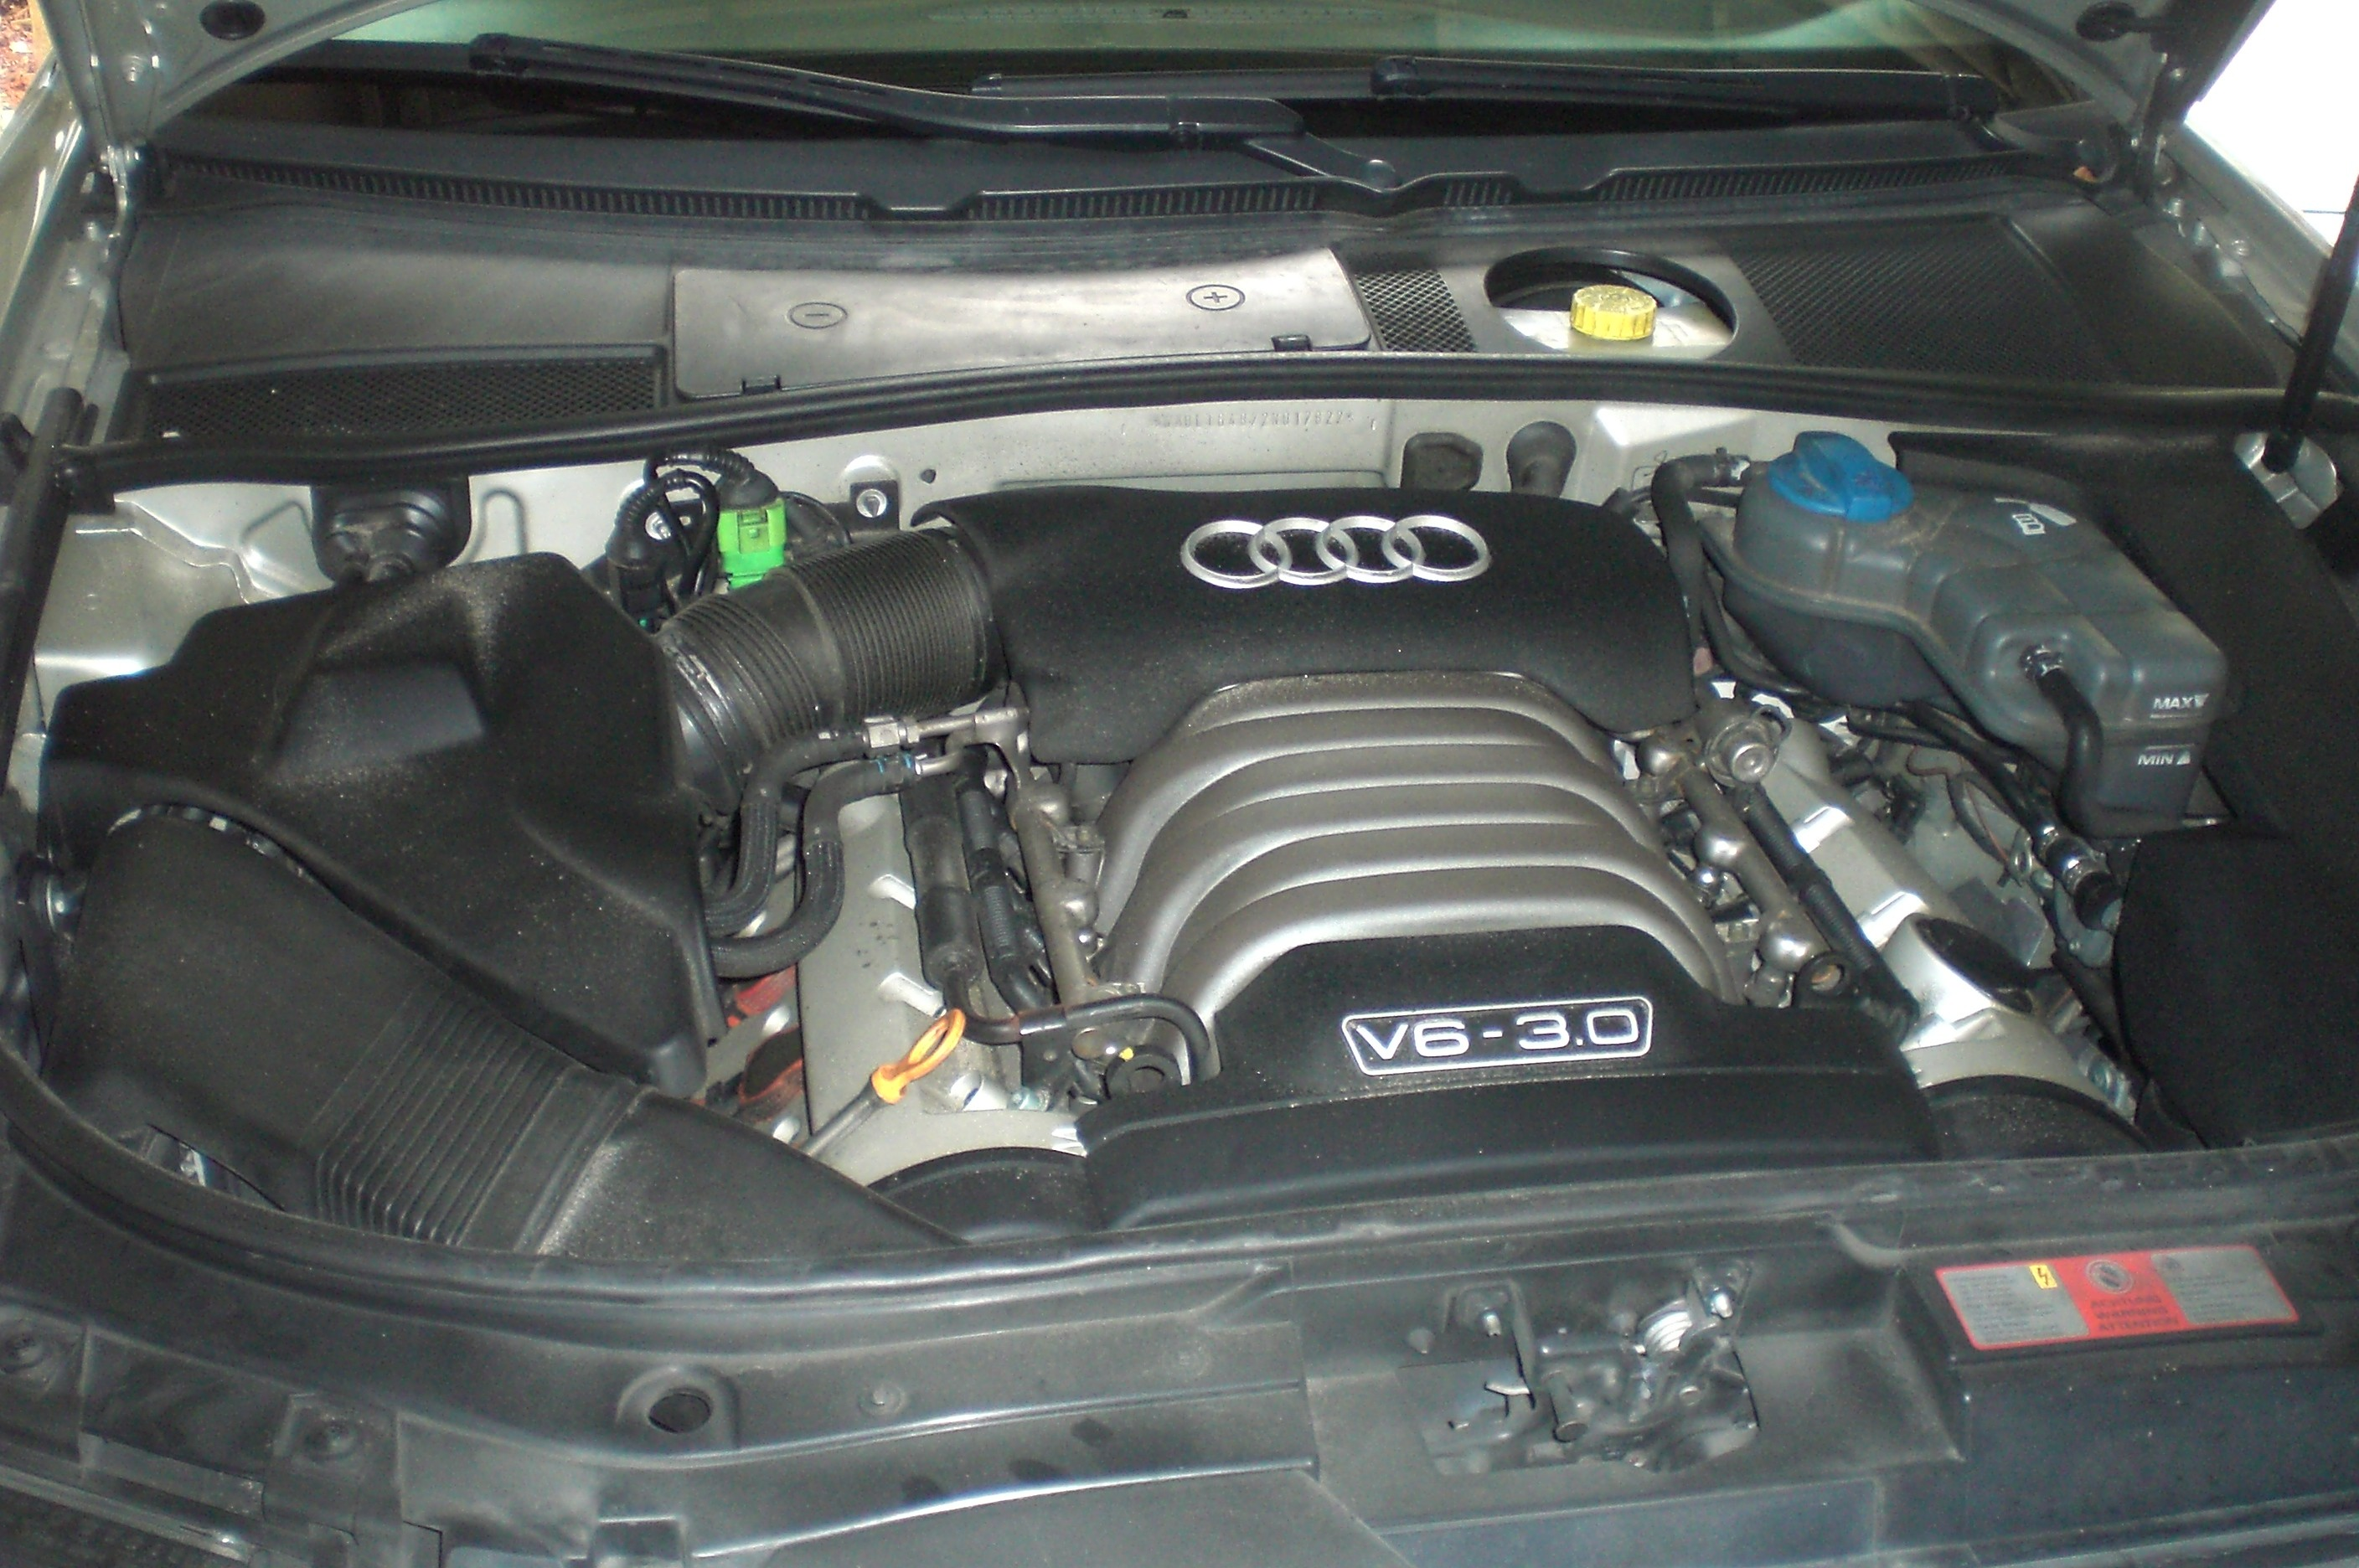 2000 Audi A6 Engine Diagram Price Modifications Pictures 3 0 Tdi Fuse Box Moibibiki Of